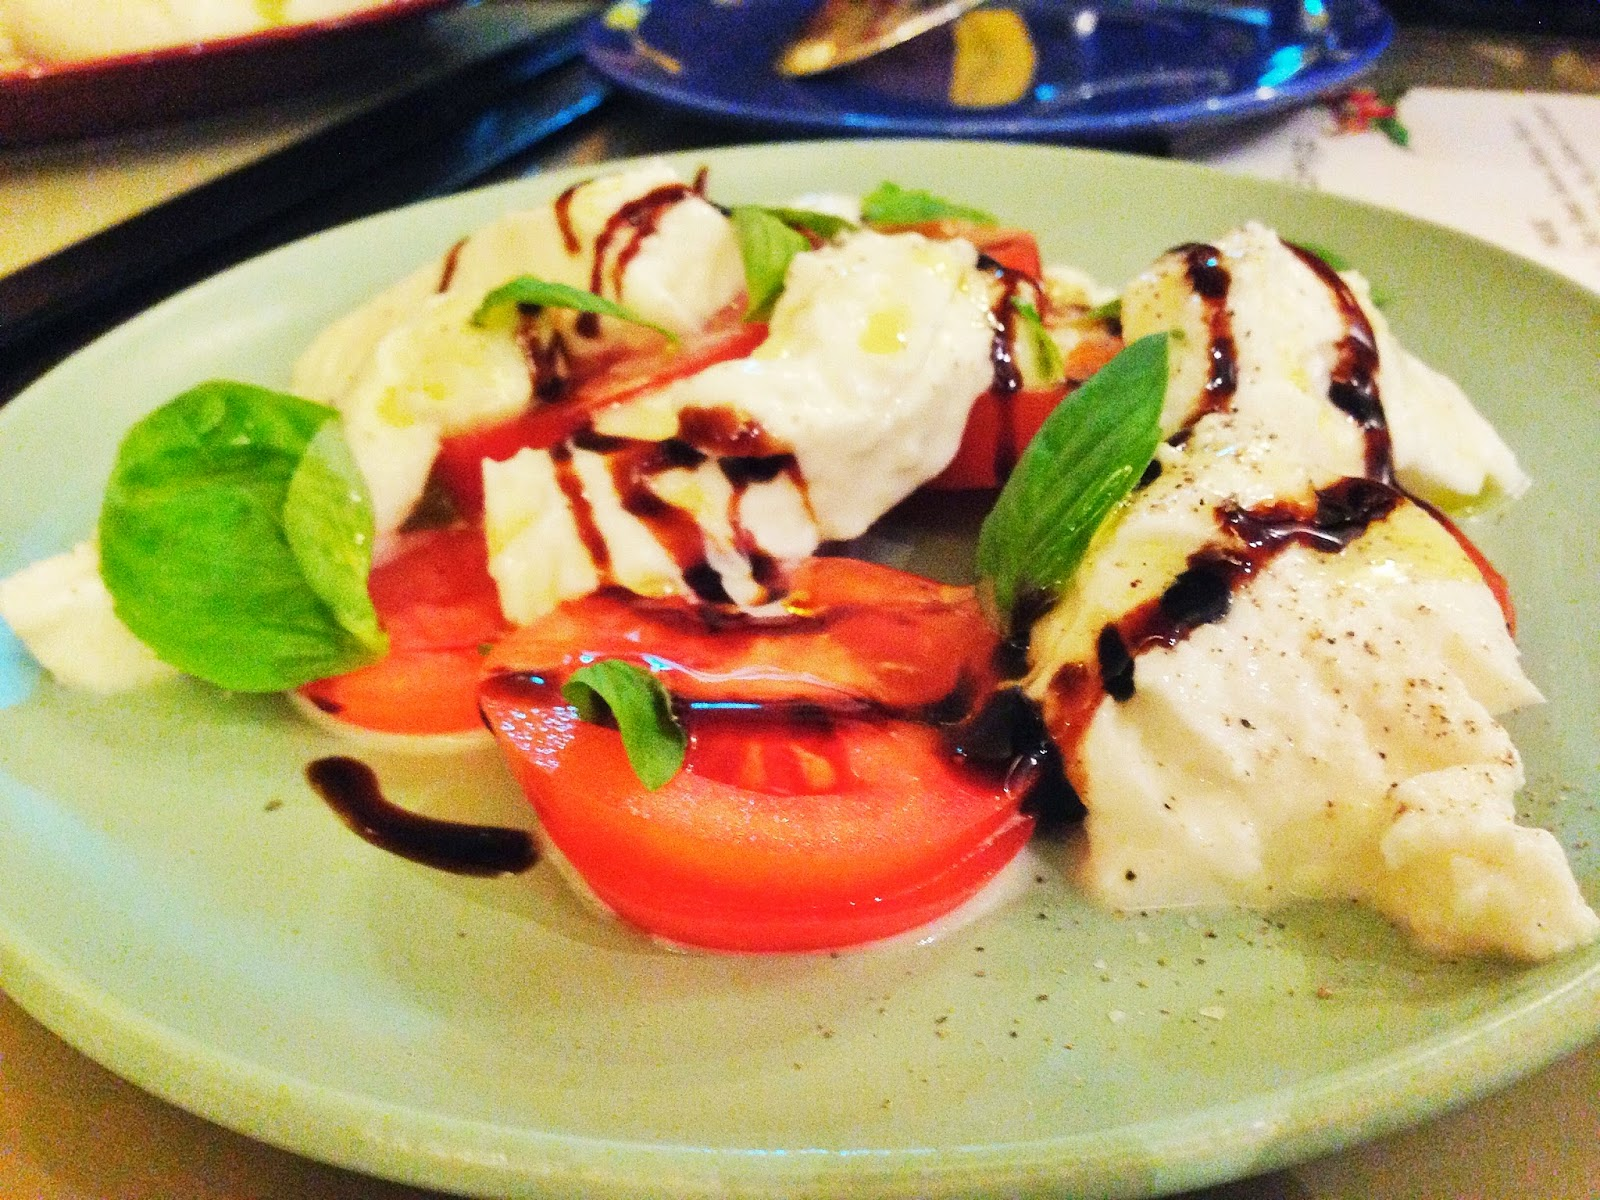 Caprese: Tomatoes, Buffalo Mozzarella, Basil, Balsamic & Extra Virgin Olive Oil